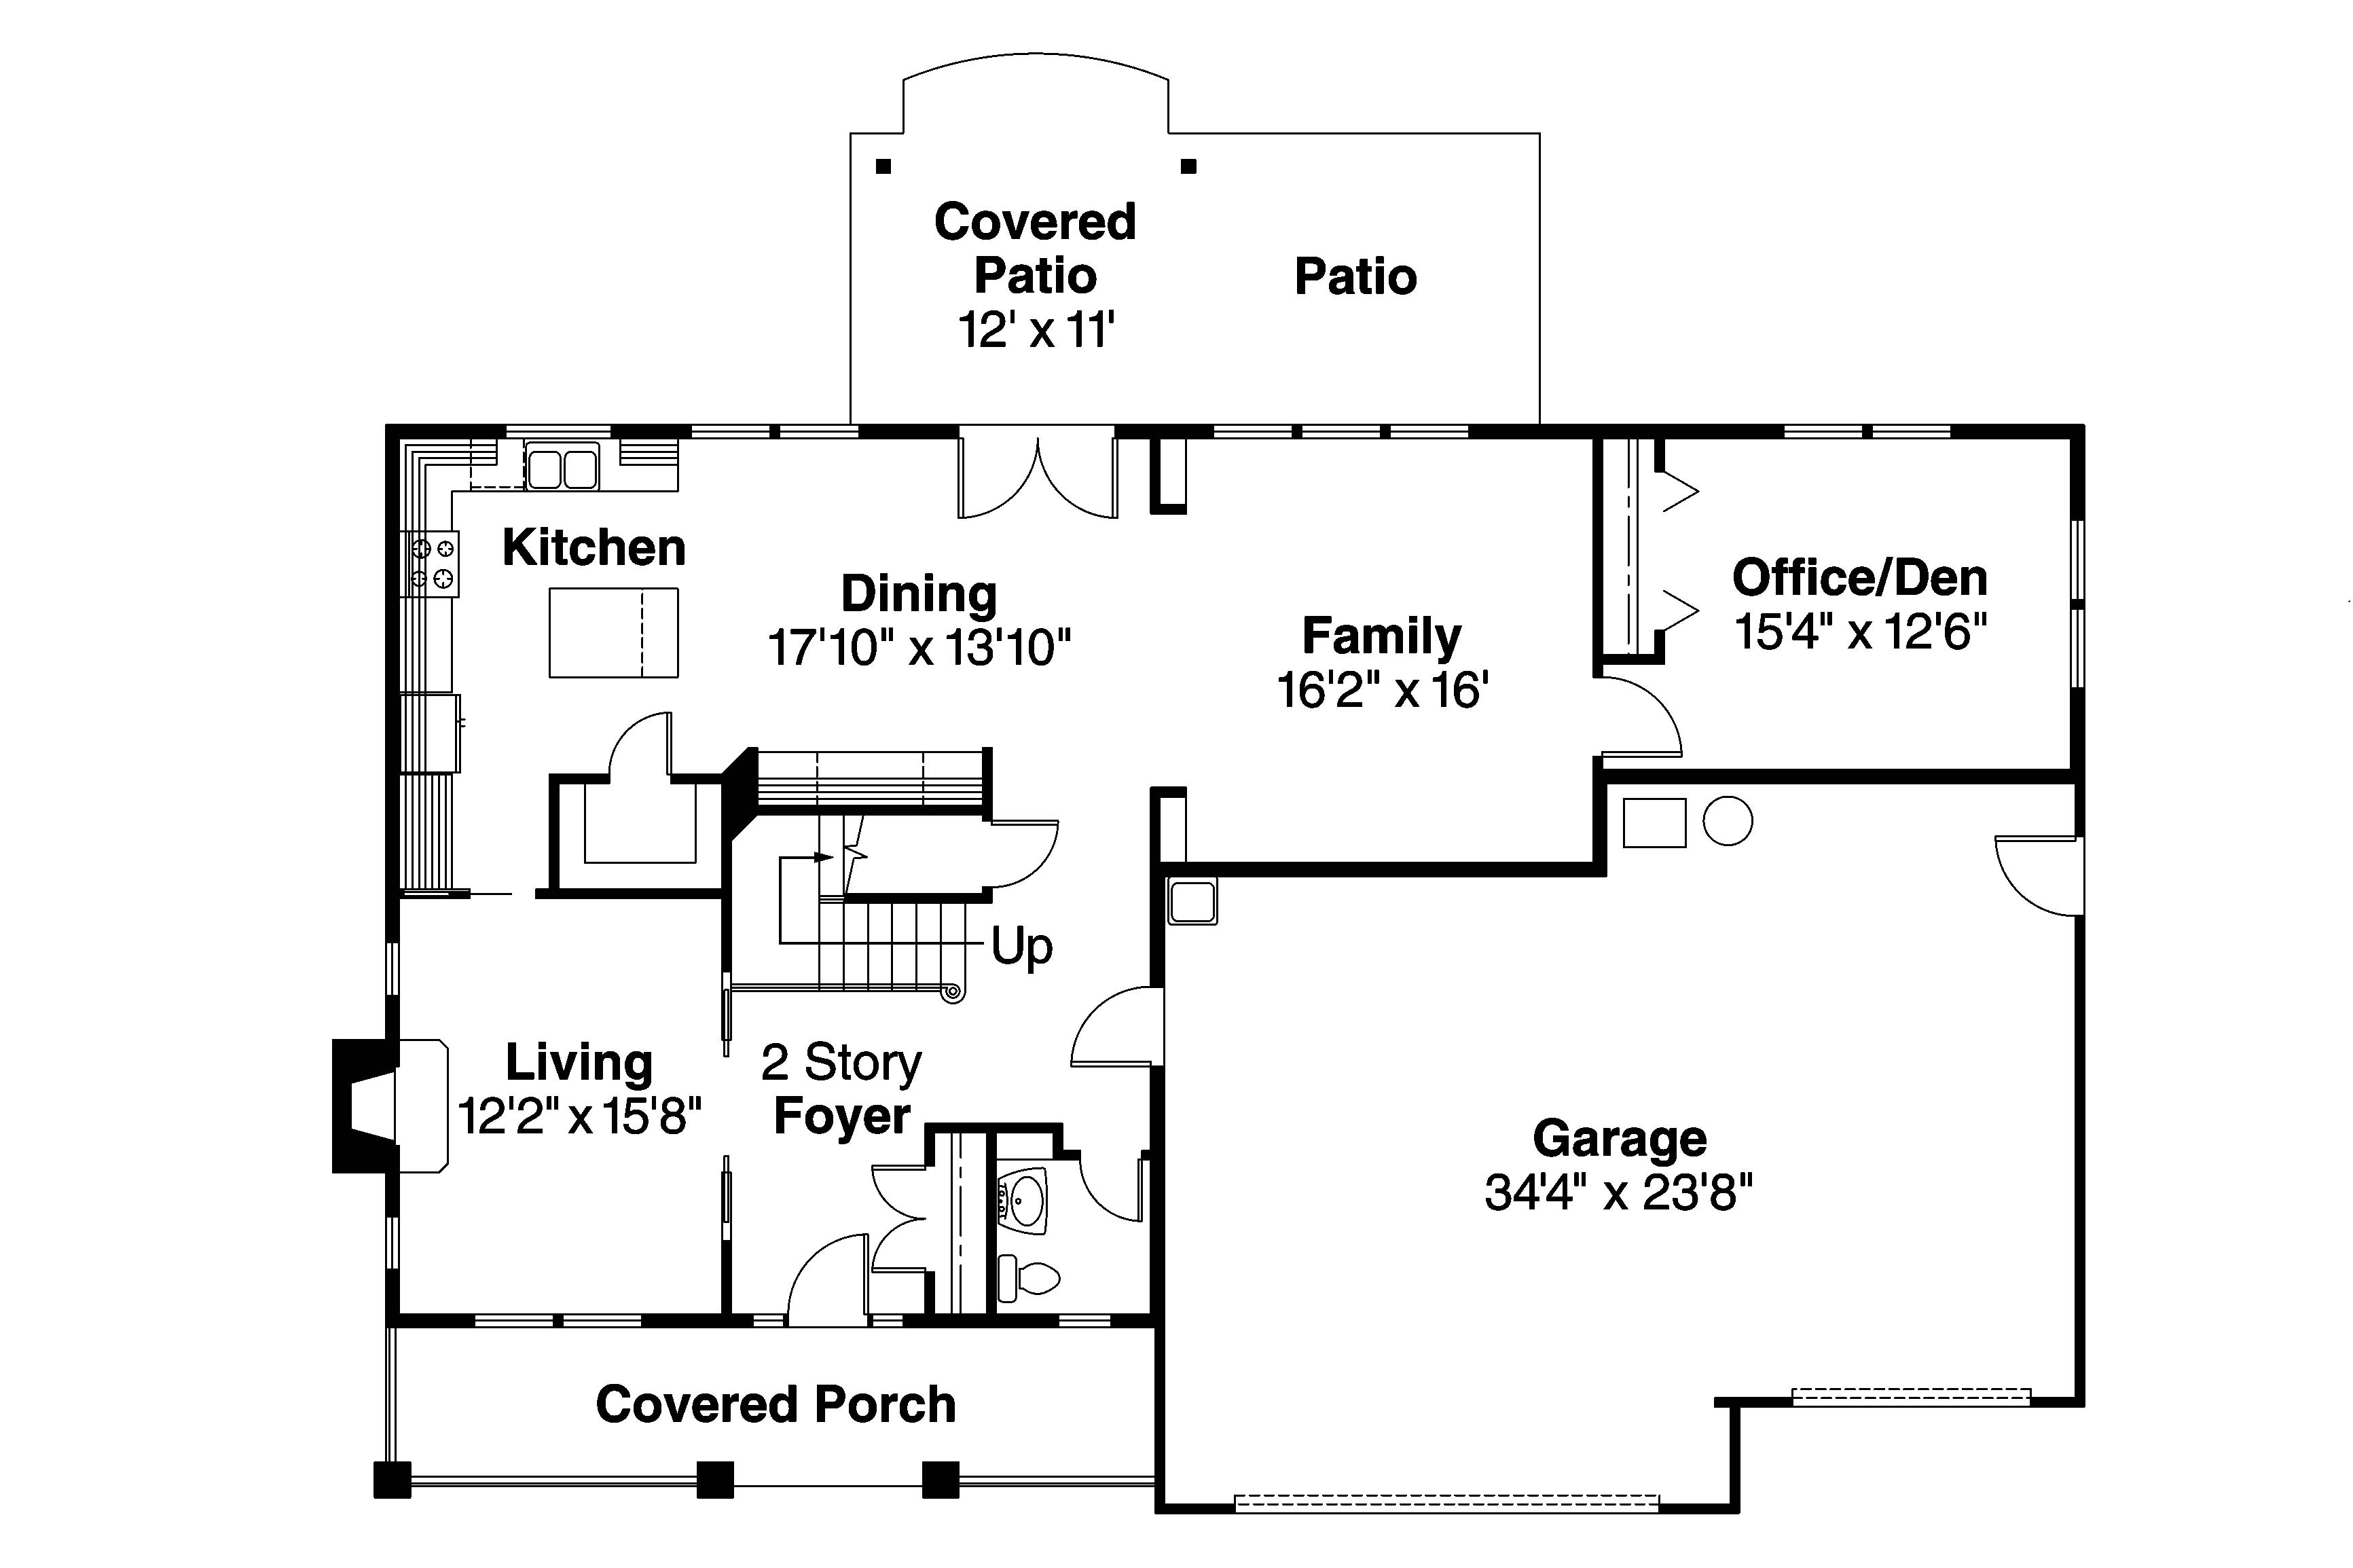 Elevation Floor Plan House : Bungalow house plans cavanaugh associated designs